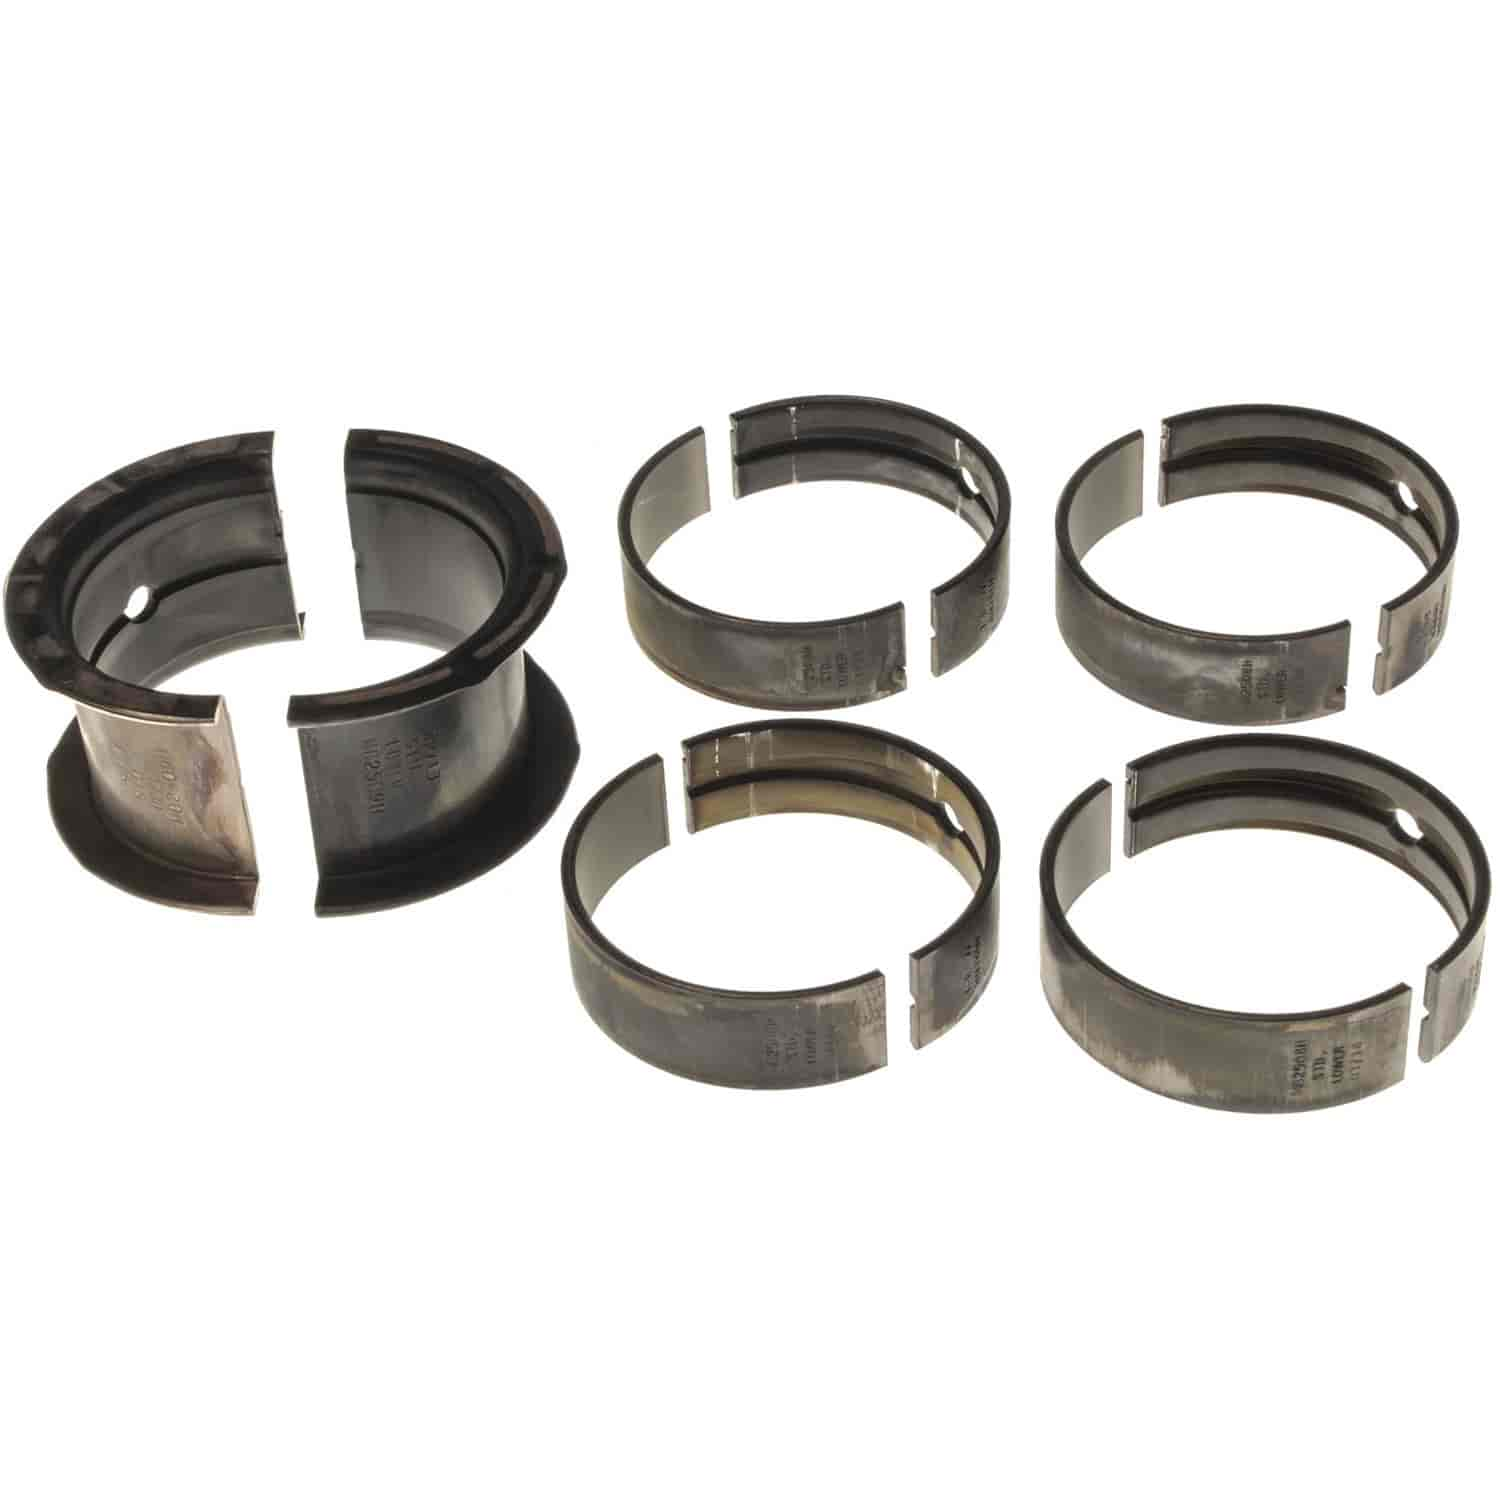 Clevite MS909HX - Clevite 77 GM High-Performance Bearings